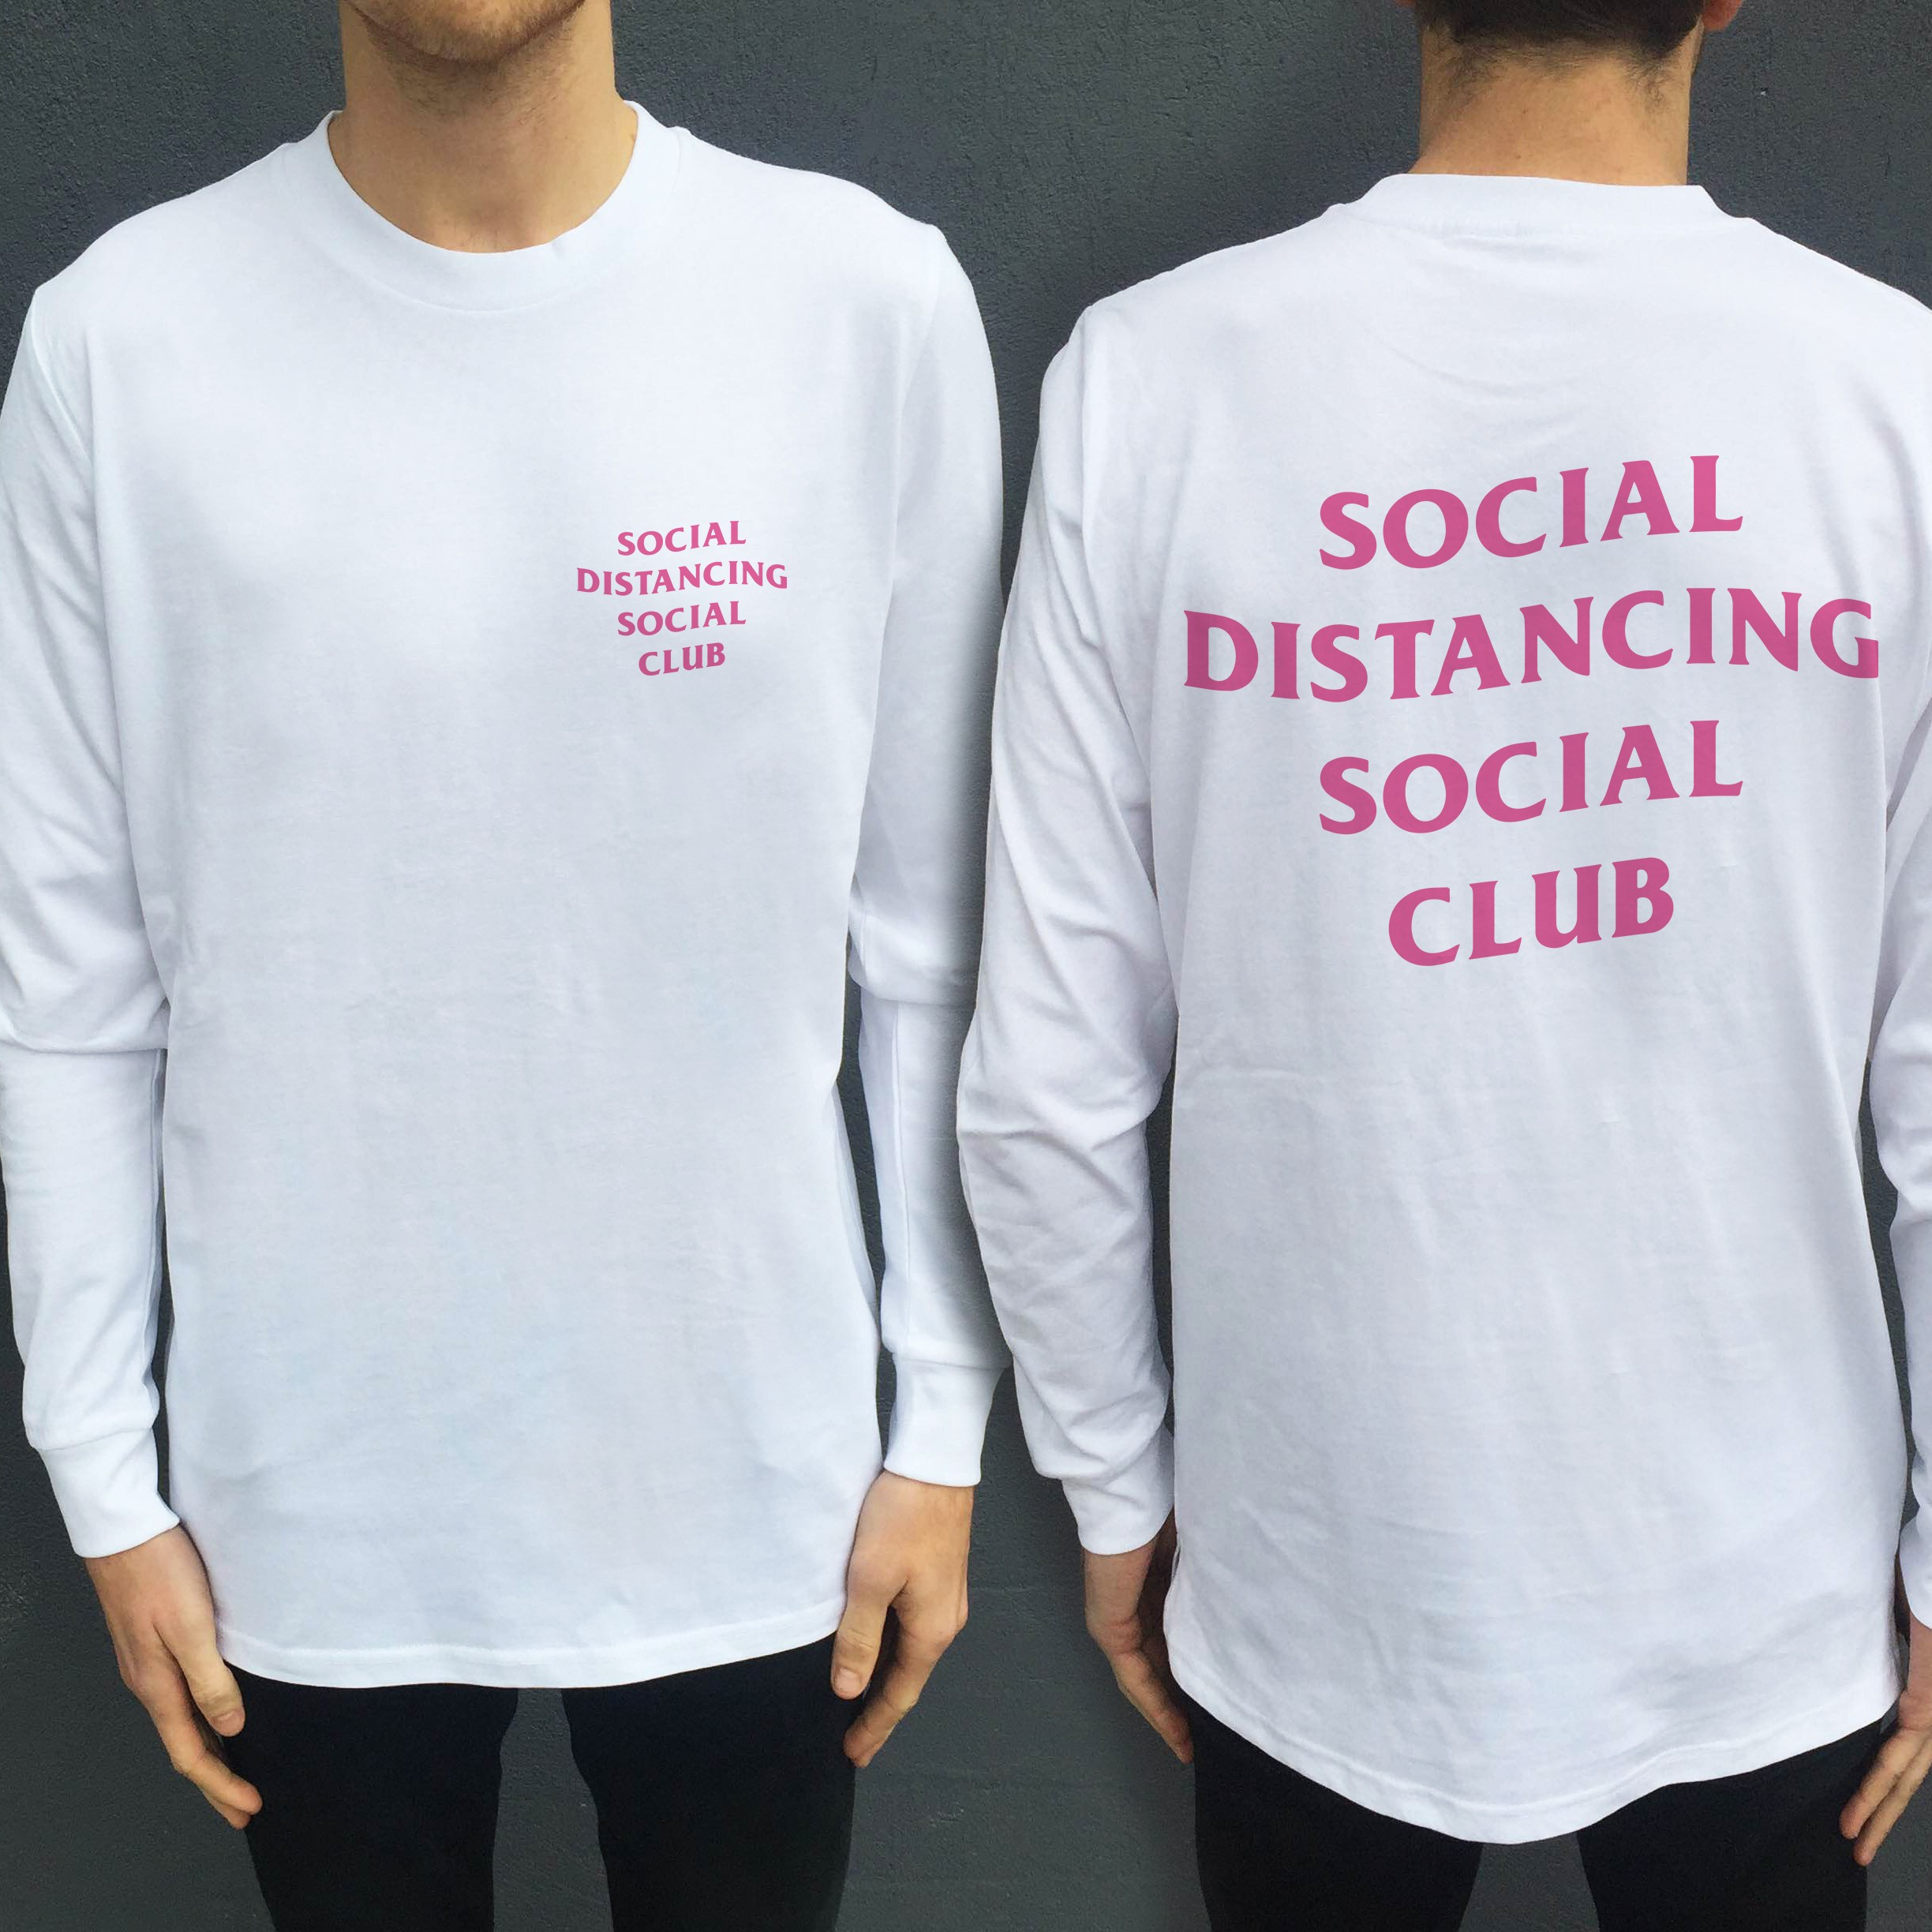 SOCIAL DISTANCING LONGSLEEVE FRONT AND BACK